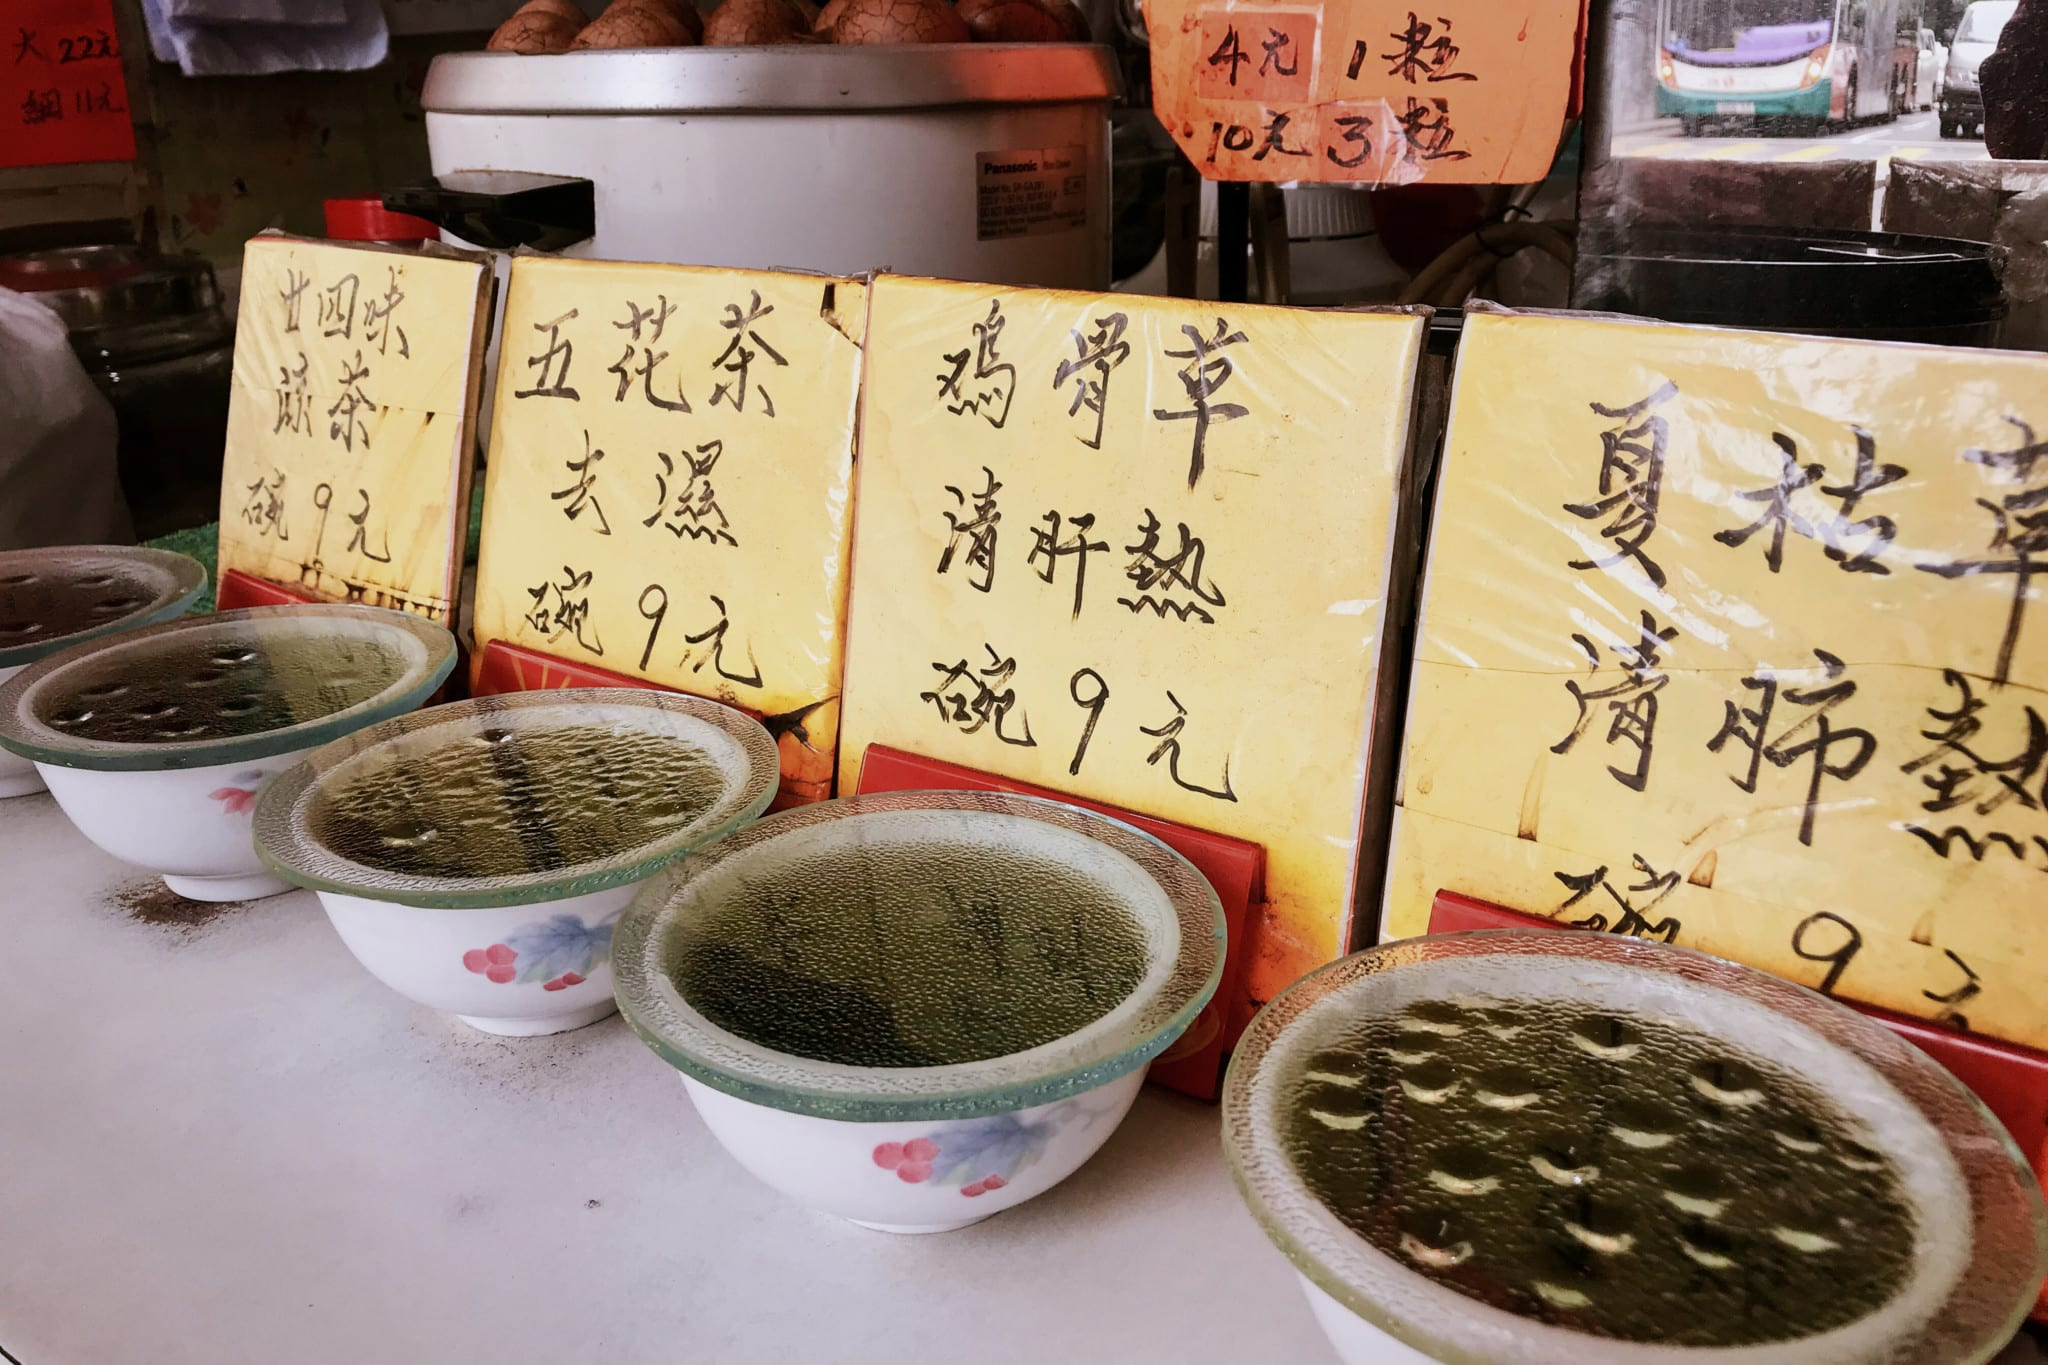 What's Liang Cha? Types of Chinese herbal teas that are most commonly enjoyed in Hong Kong